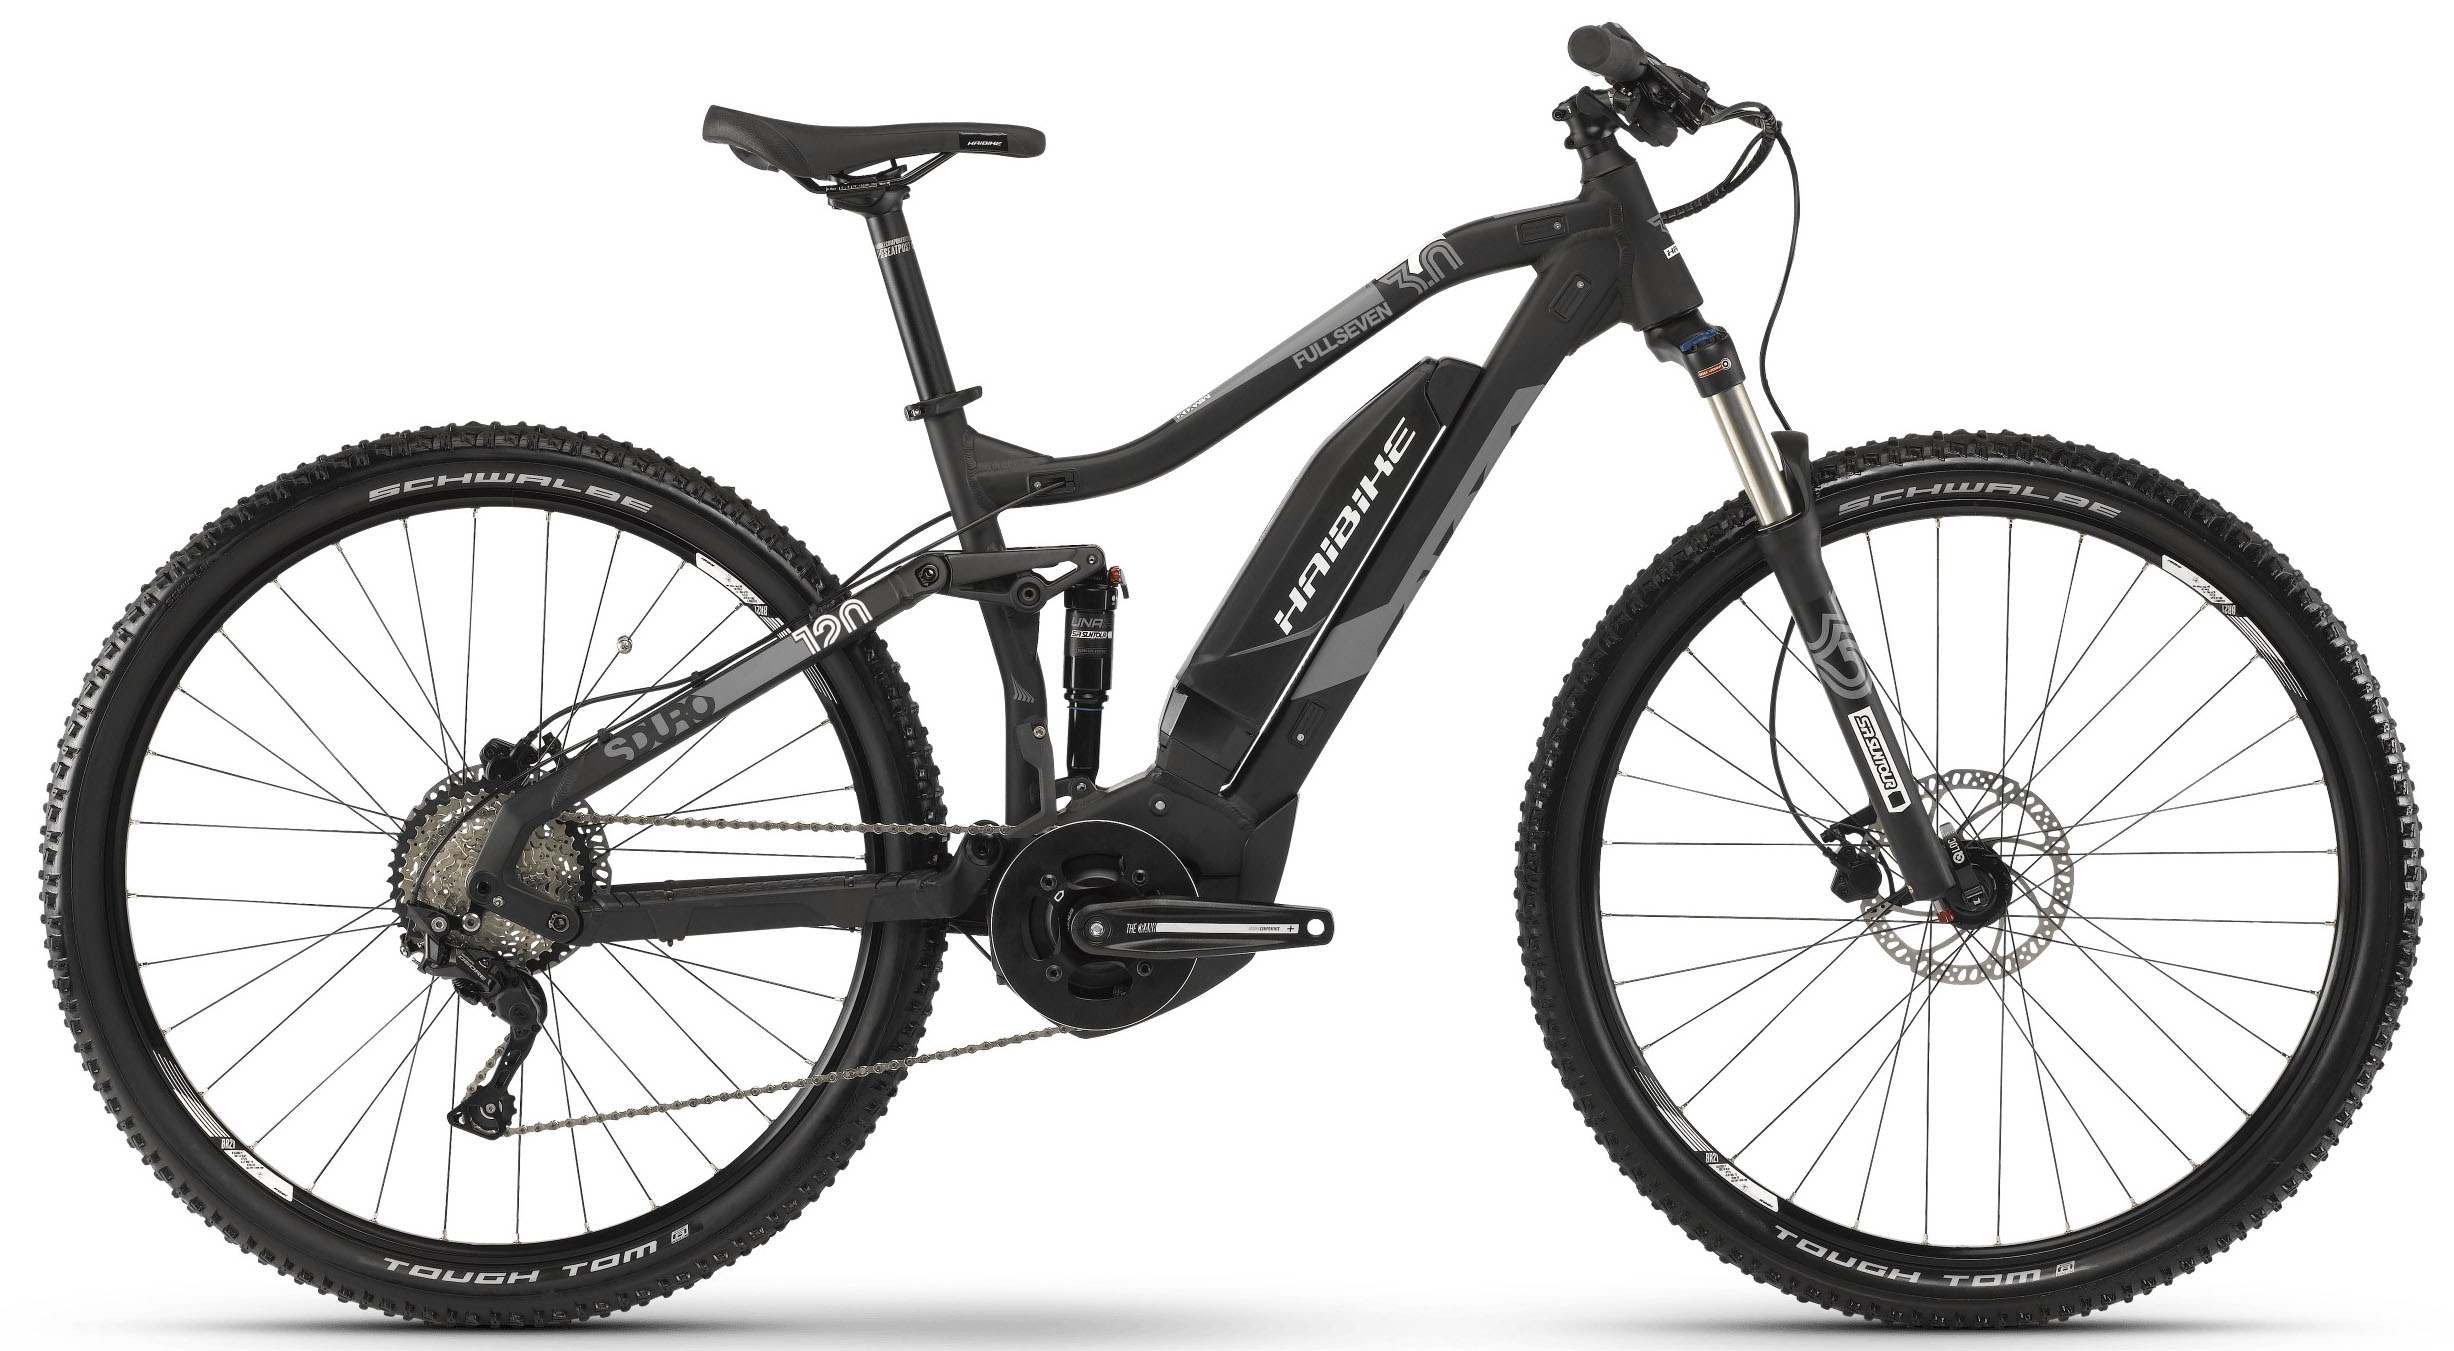 Велосипед Haibike SDURO FullSeven 3.0 500Wh 10-G Deore 2019 велосипед haibike sduro hardnine 4 0 500wh 10 g deore 2019